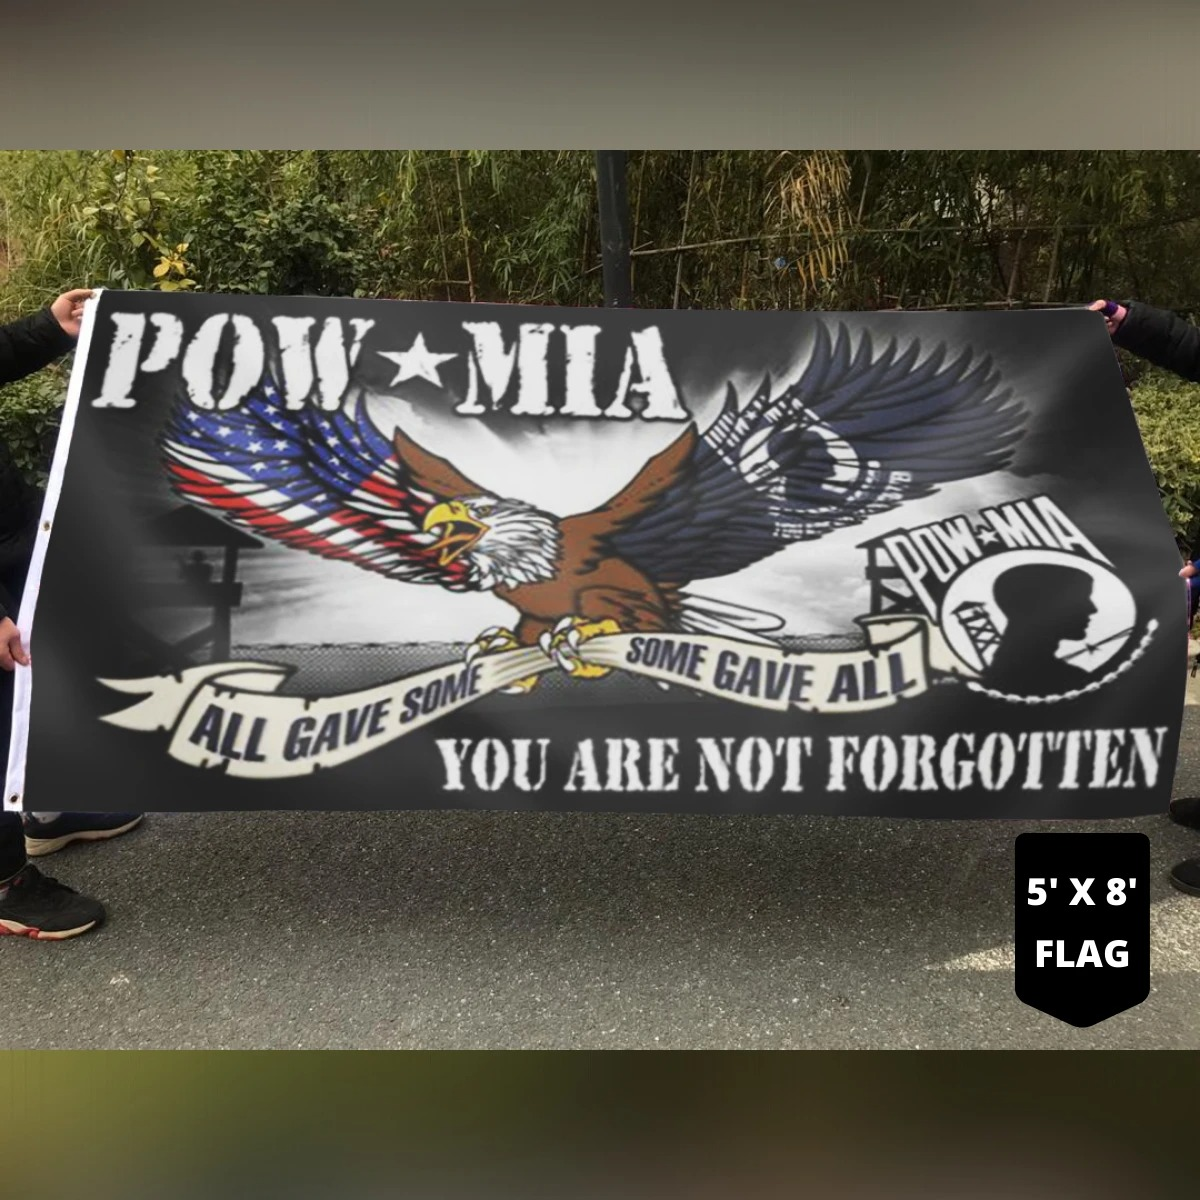 Pow mid all gave some some gave all you are not forgotten flag3